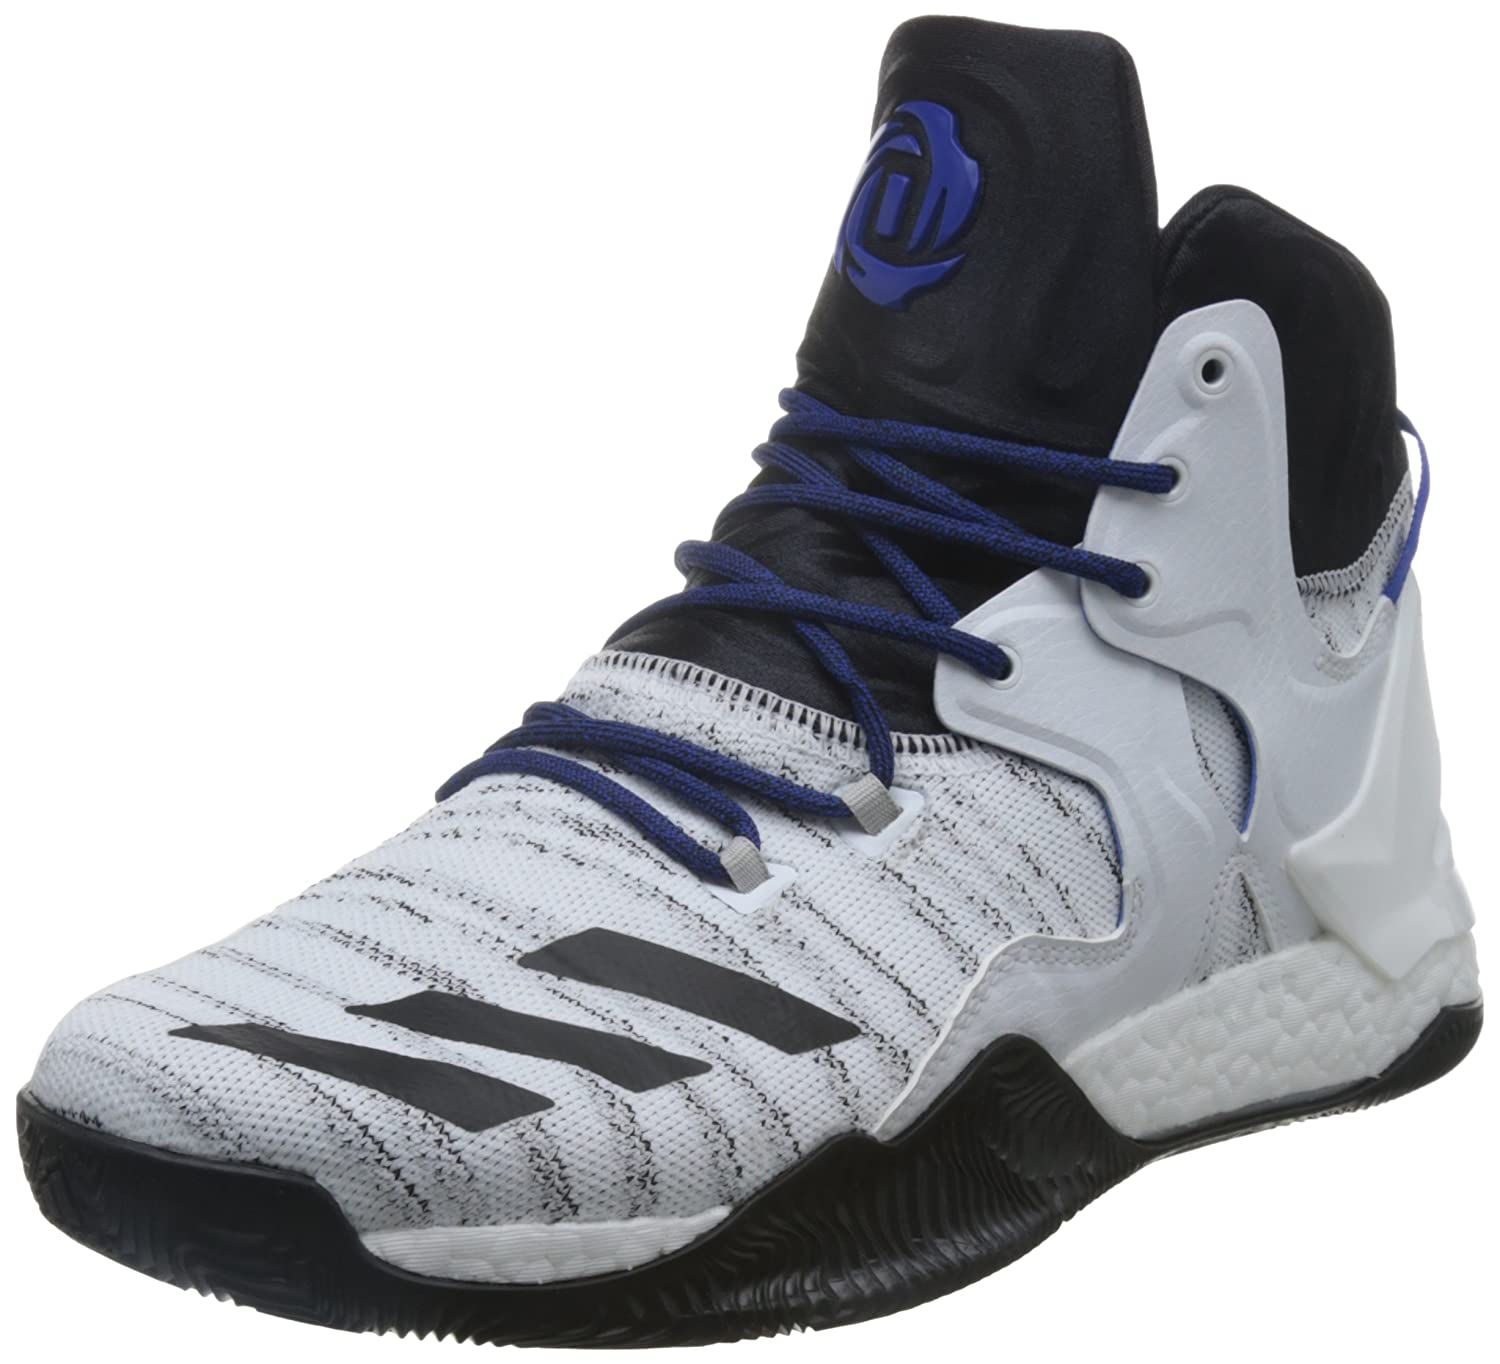 factory authentic 43fd7 8f5b2 Amazon.com  adidas D Rose 7 Primeknit Mens Basketball SneakersShoes   Basketball